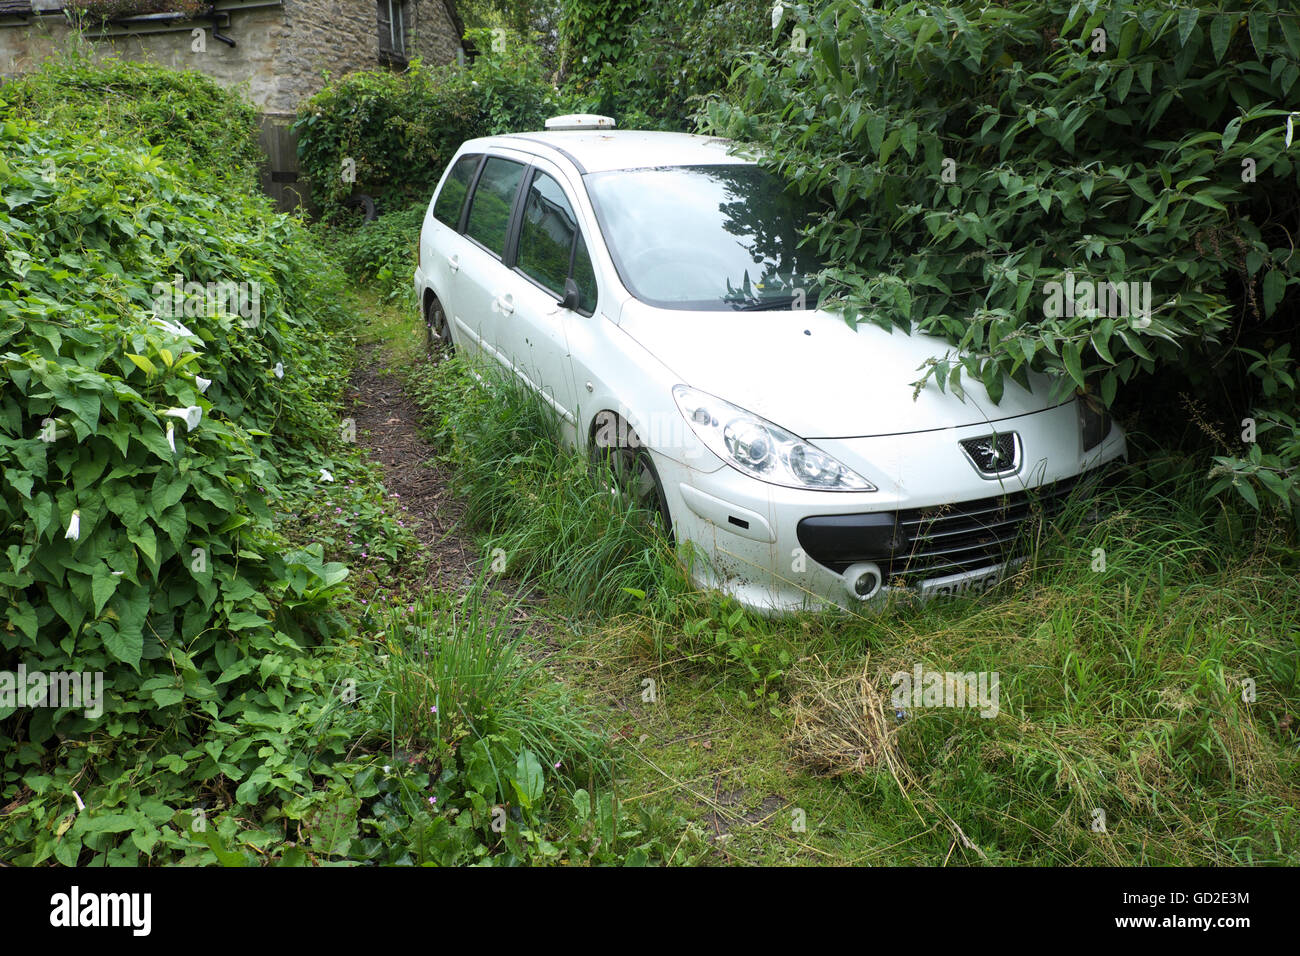 White car parked among overgrown hedge and grass Wales UK - Stock Image